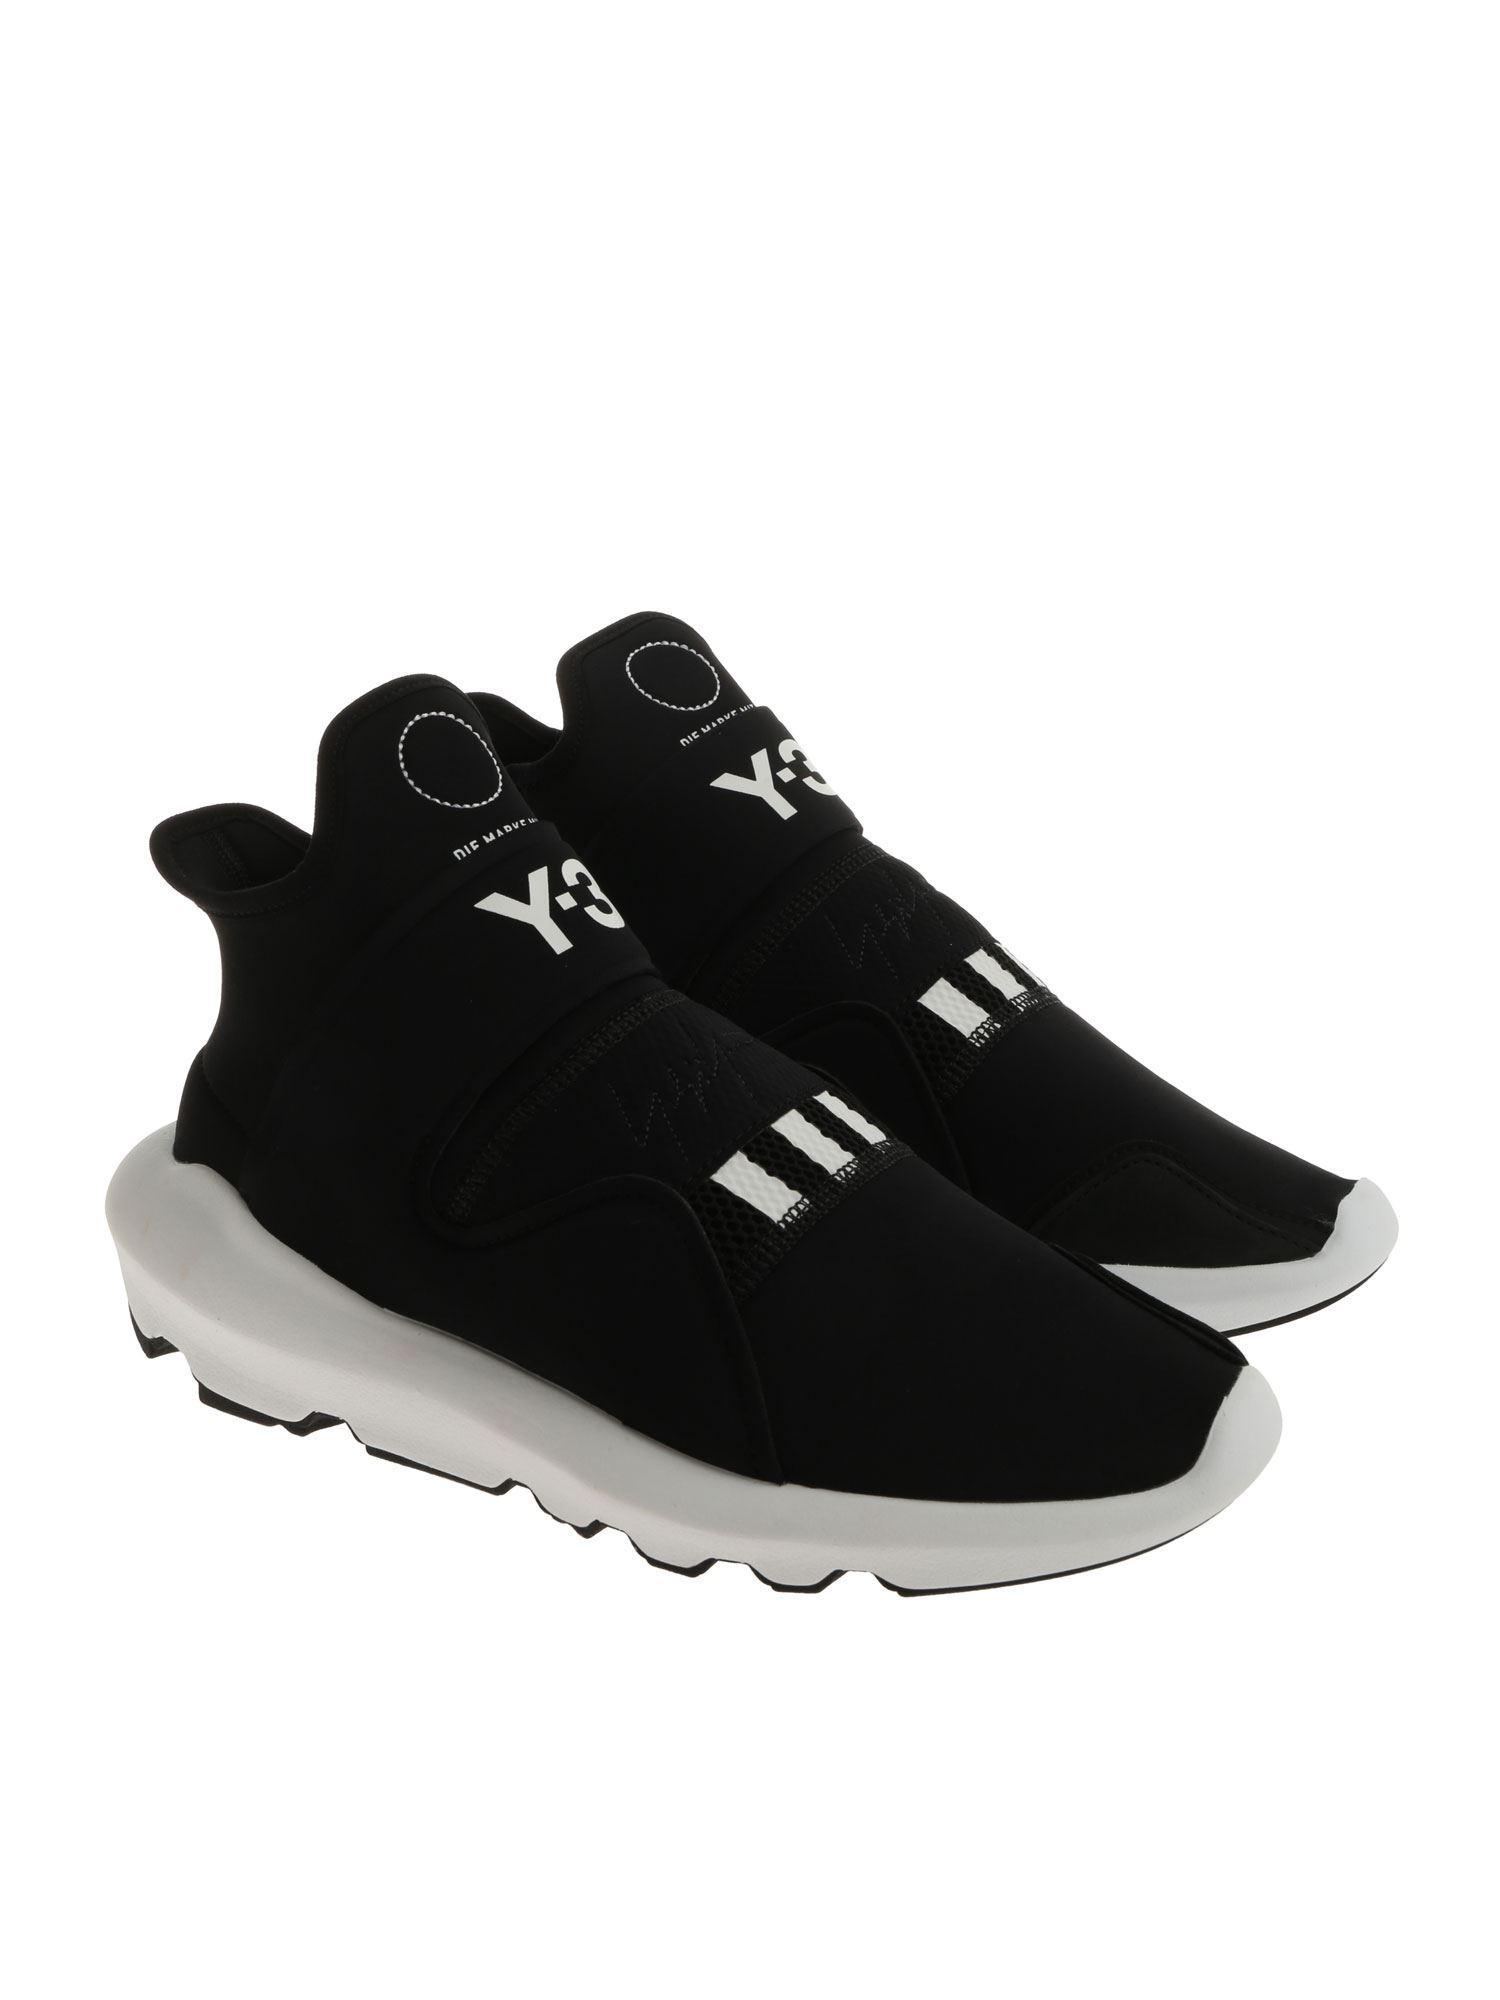 save off 1b445 e2727 Y-3 Black Suberou Sneakers With Logo Details in Black - Lyst